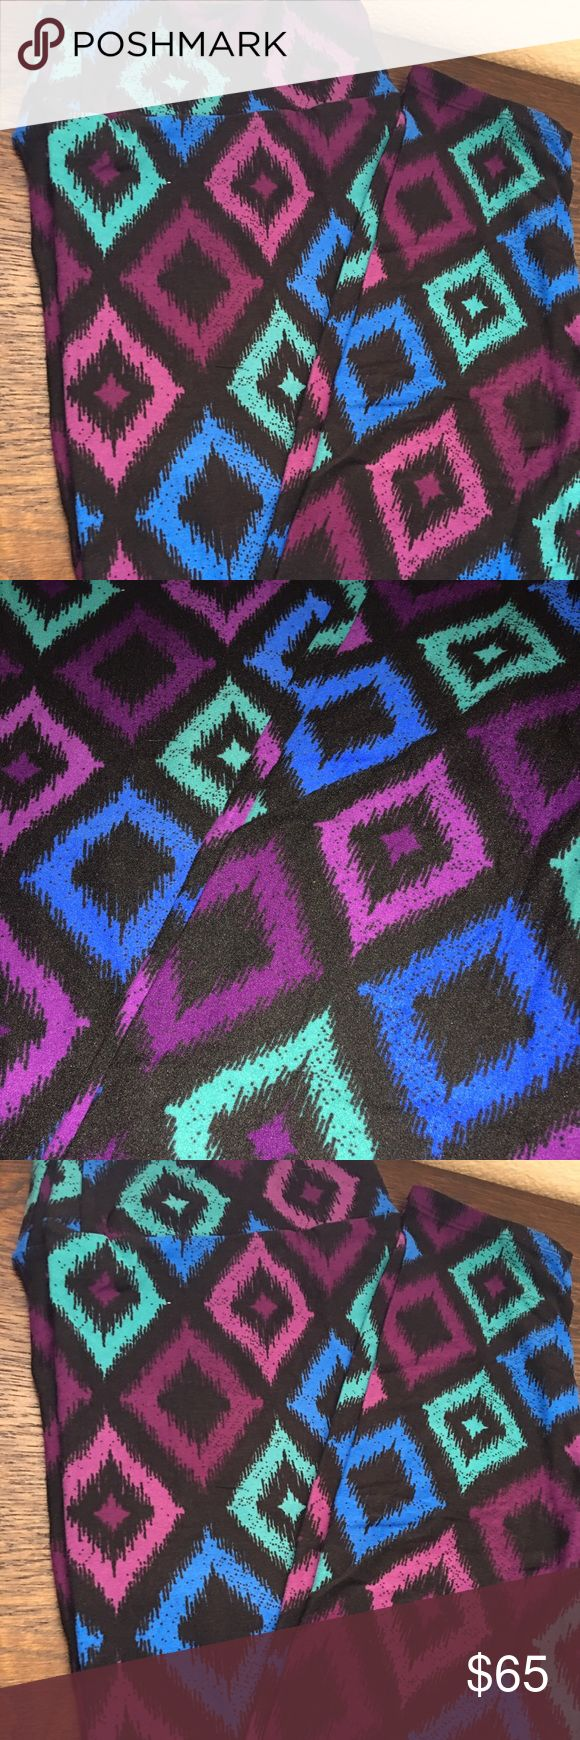 LuLaRoe TC leggings. Unicorn Tall and curvy LuLaRoe TC leggings. Hard to find print. Colors are absolutely gorgeous, much prettier in person. Buttery soft as all of the leggings are. LuLaRoe Pants Leggings